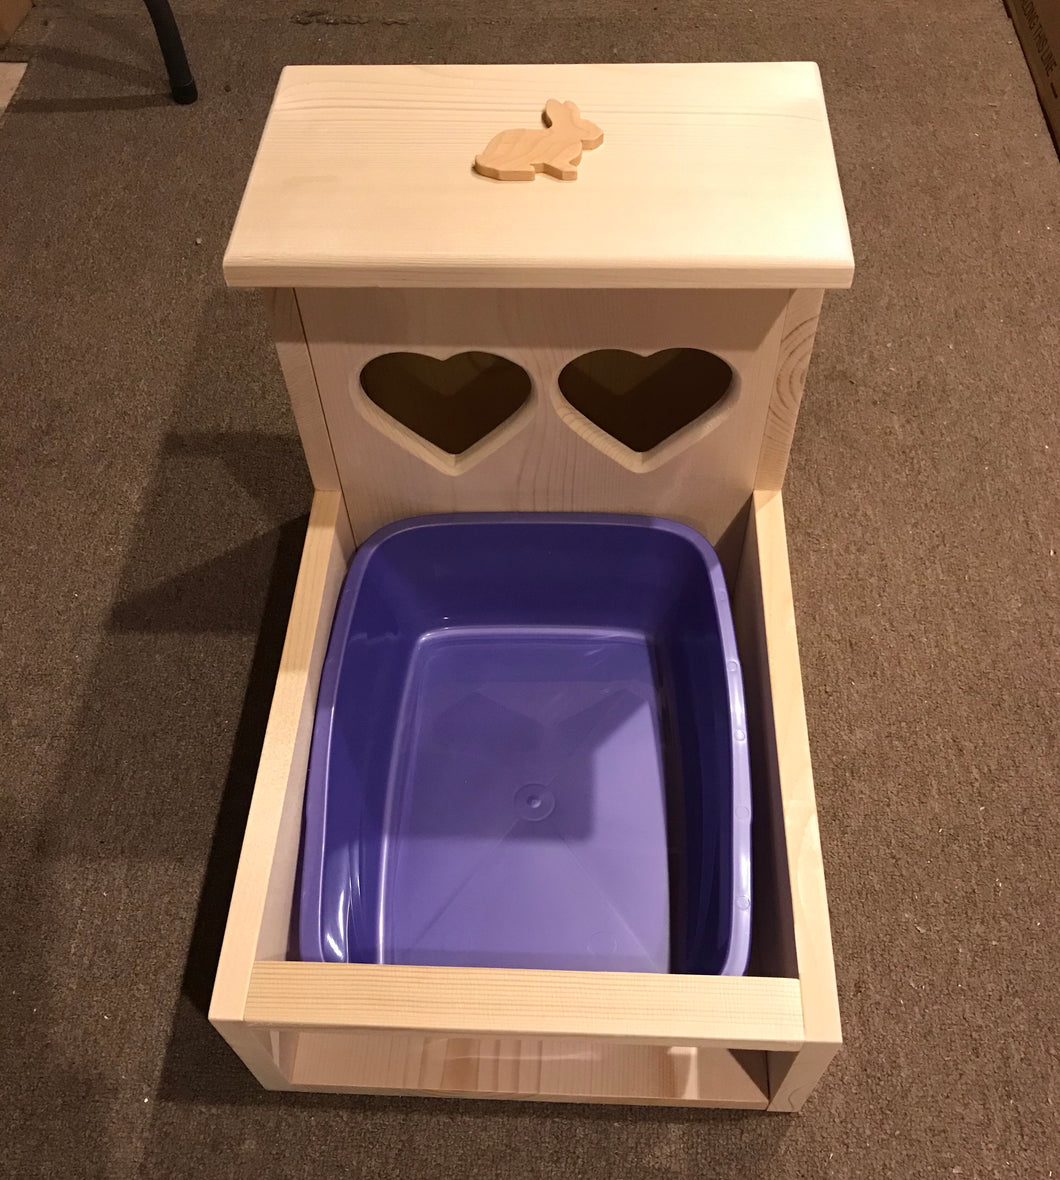 Rabbit Hay Feeder With Litter Box, Heart Shaped Hay Holes